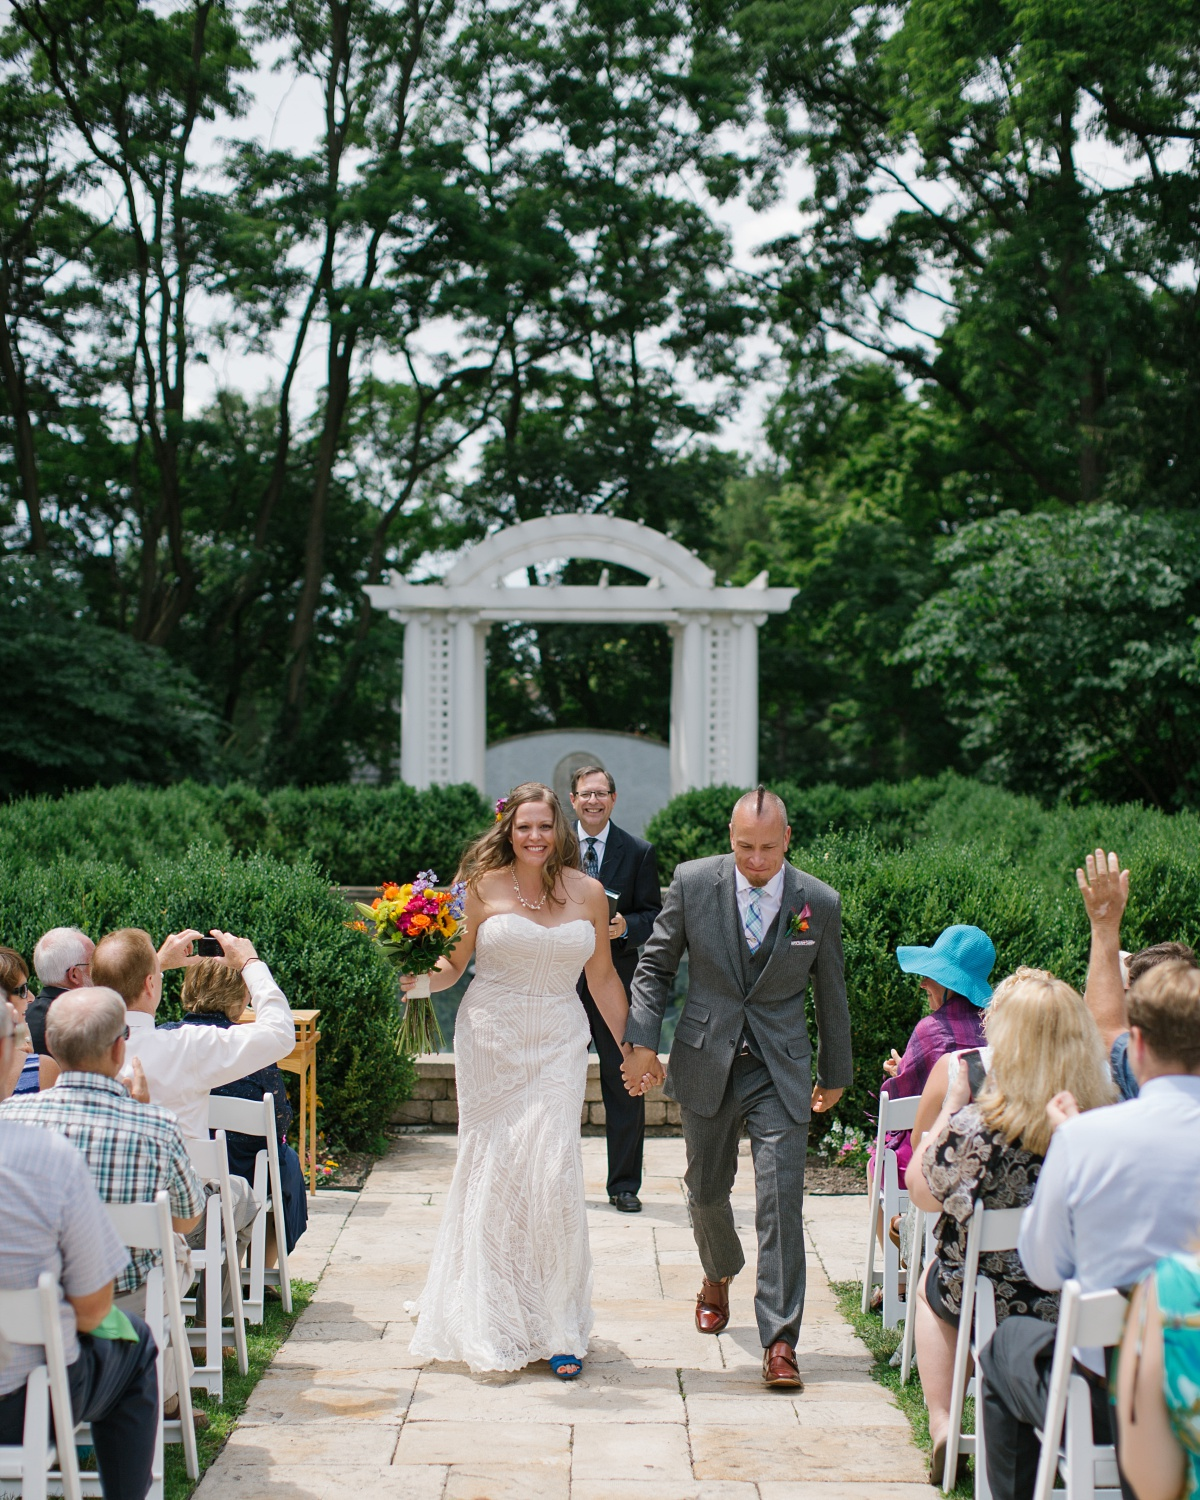 Happy bride and groom walk out of the ceremony hand-in-hand